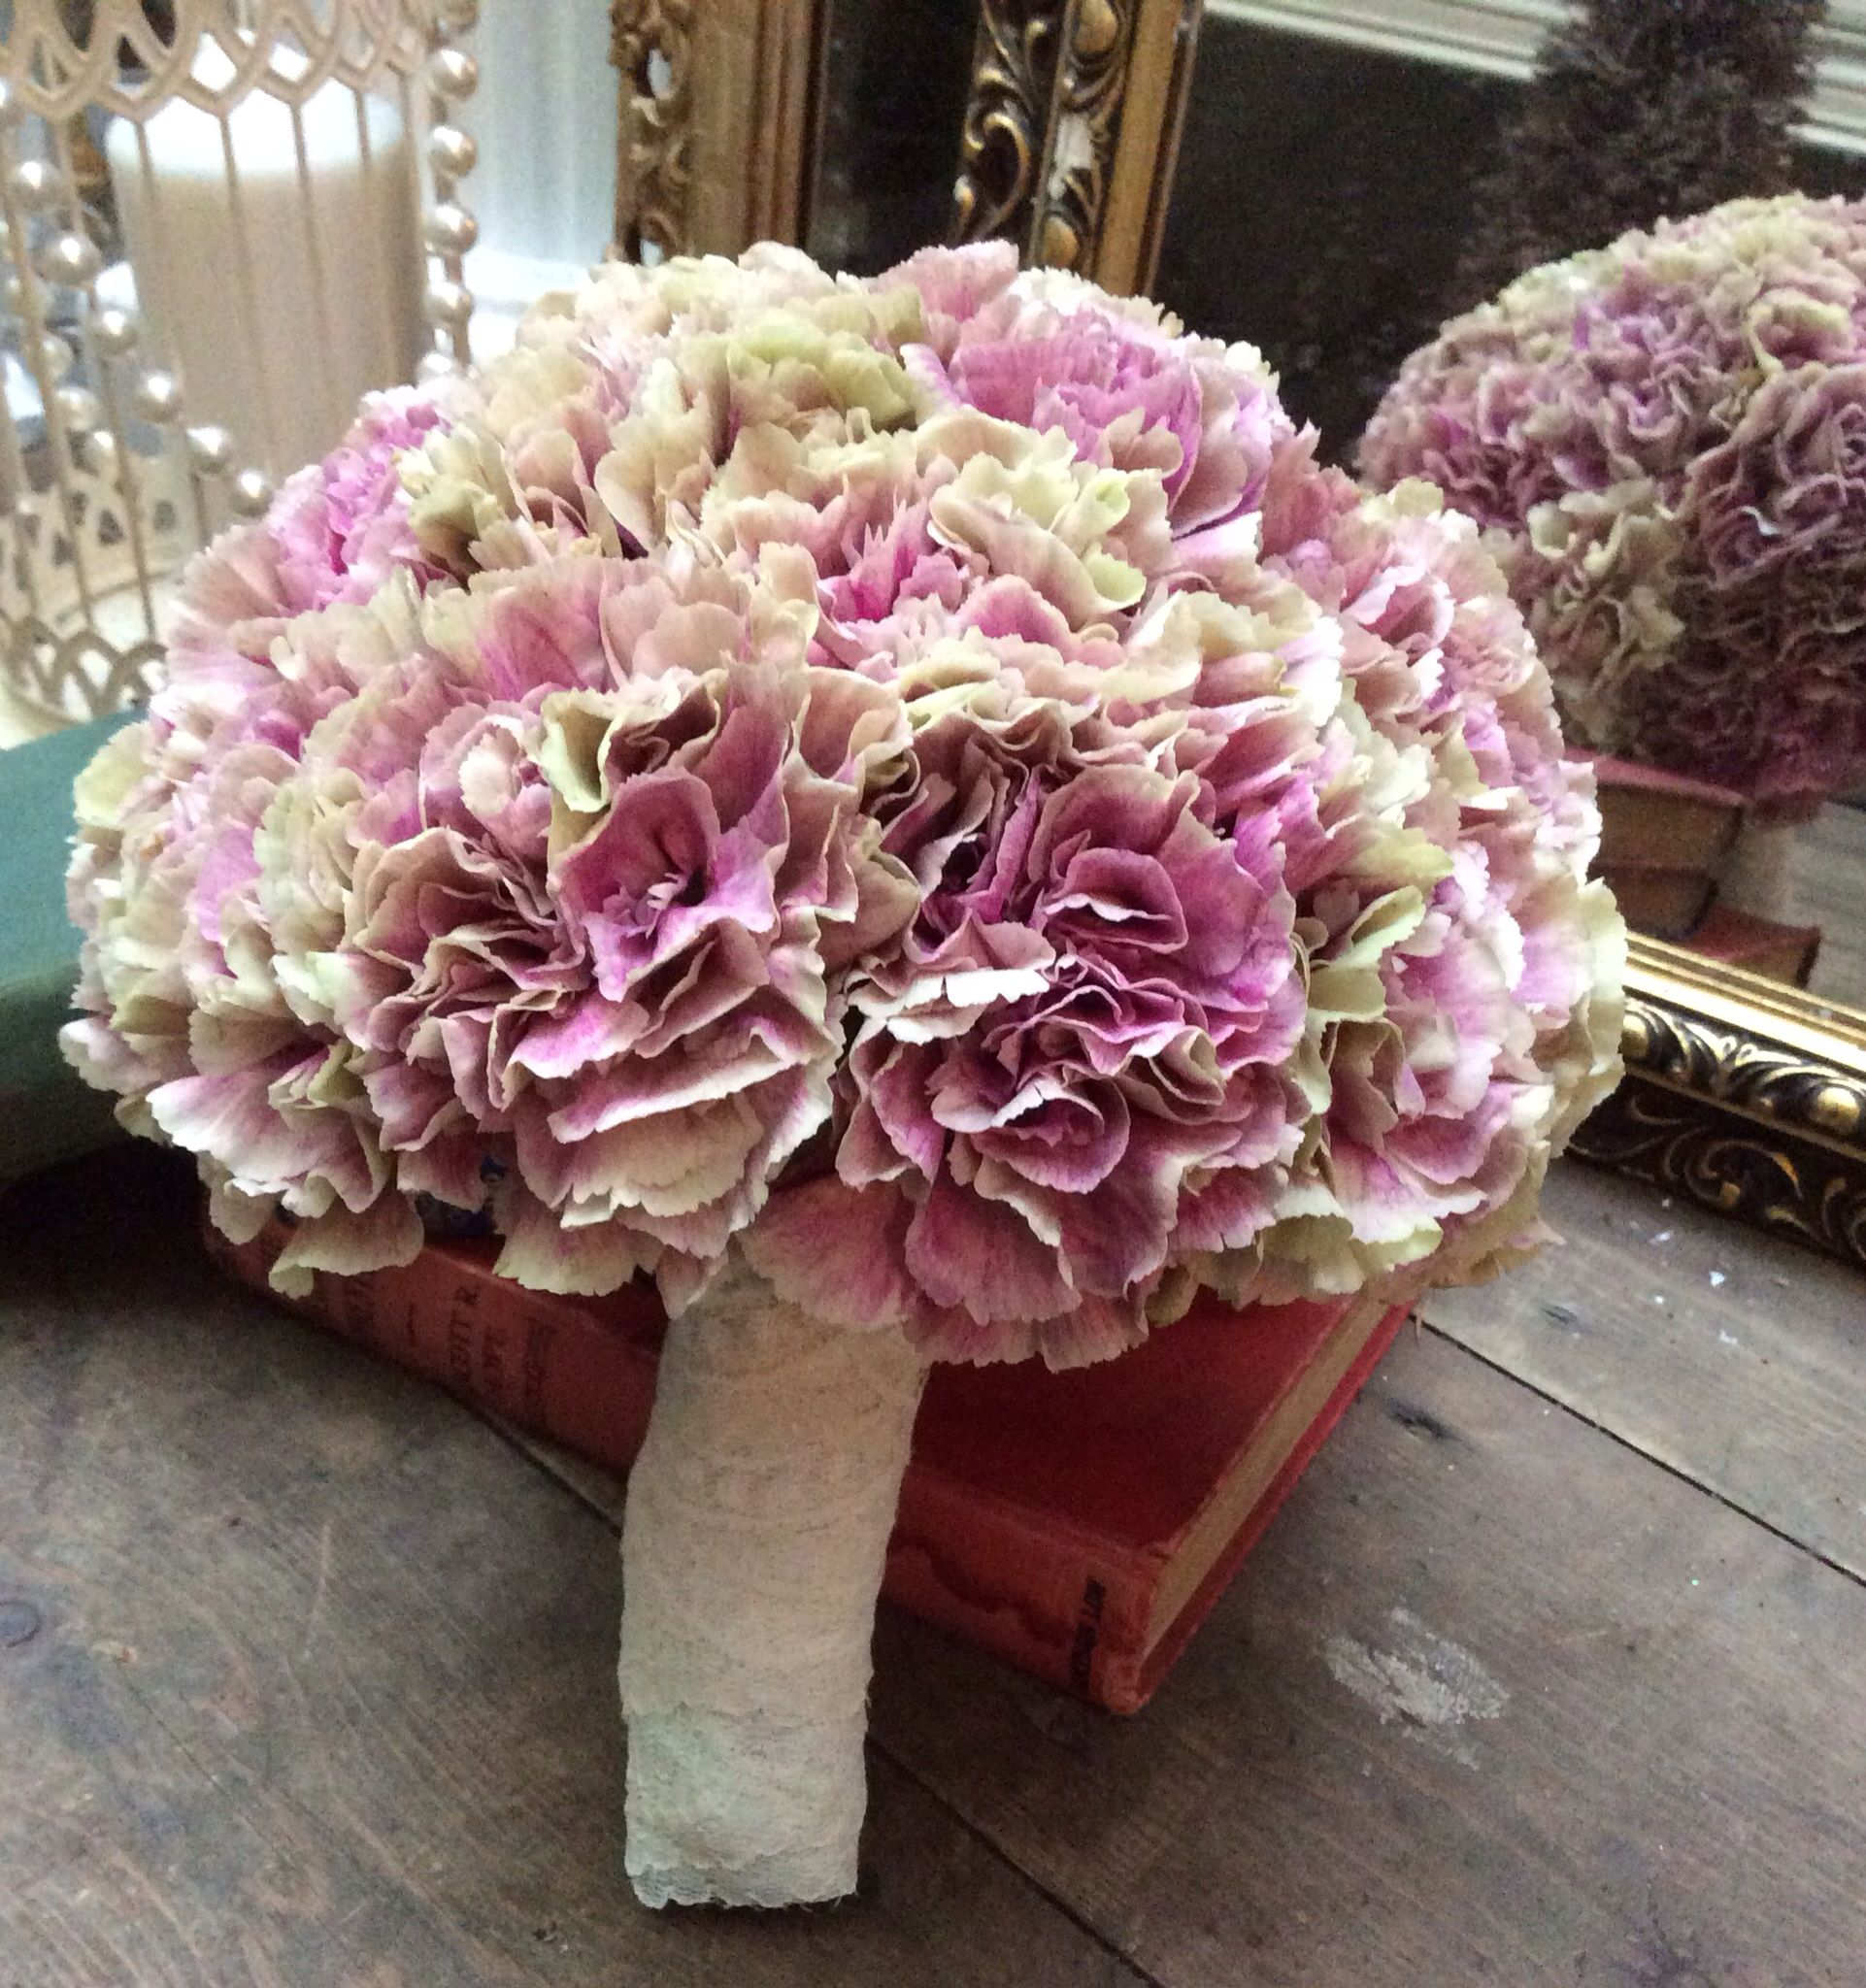 Vintage carnation bouquet xx perfect for a 1950's style wedding